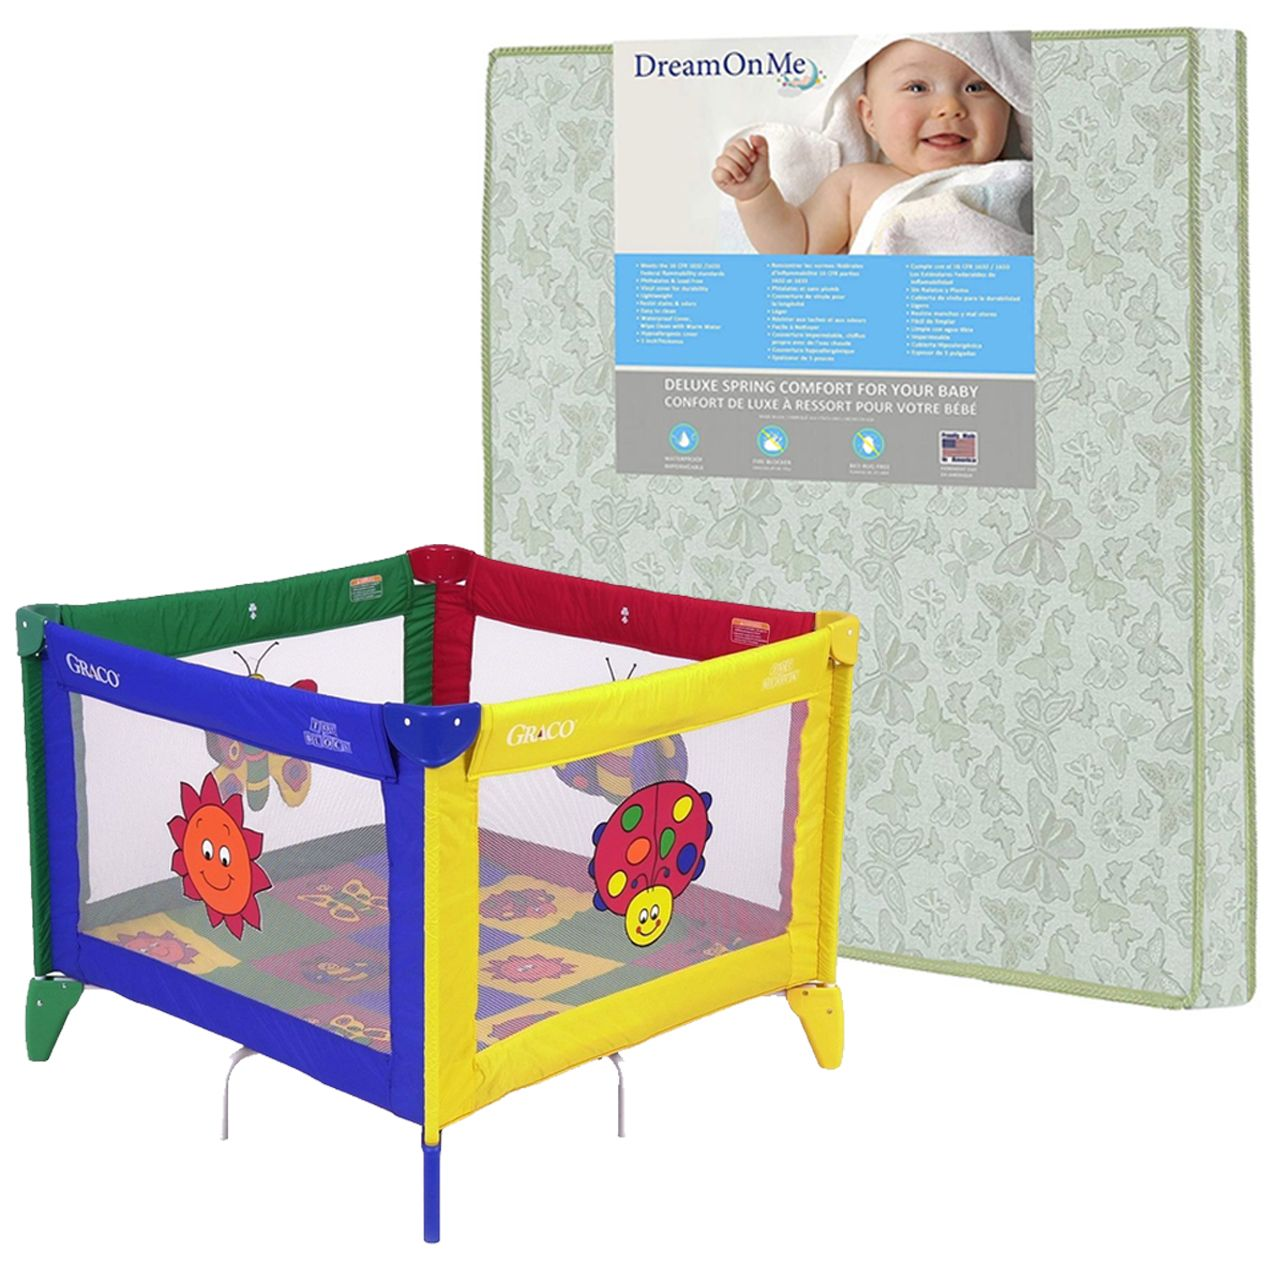 Package 13 (GRACO TOTBLOC WITH MATTRESS)